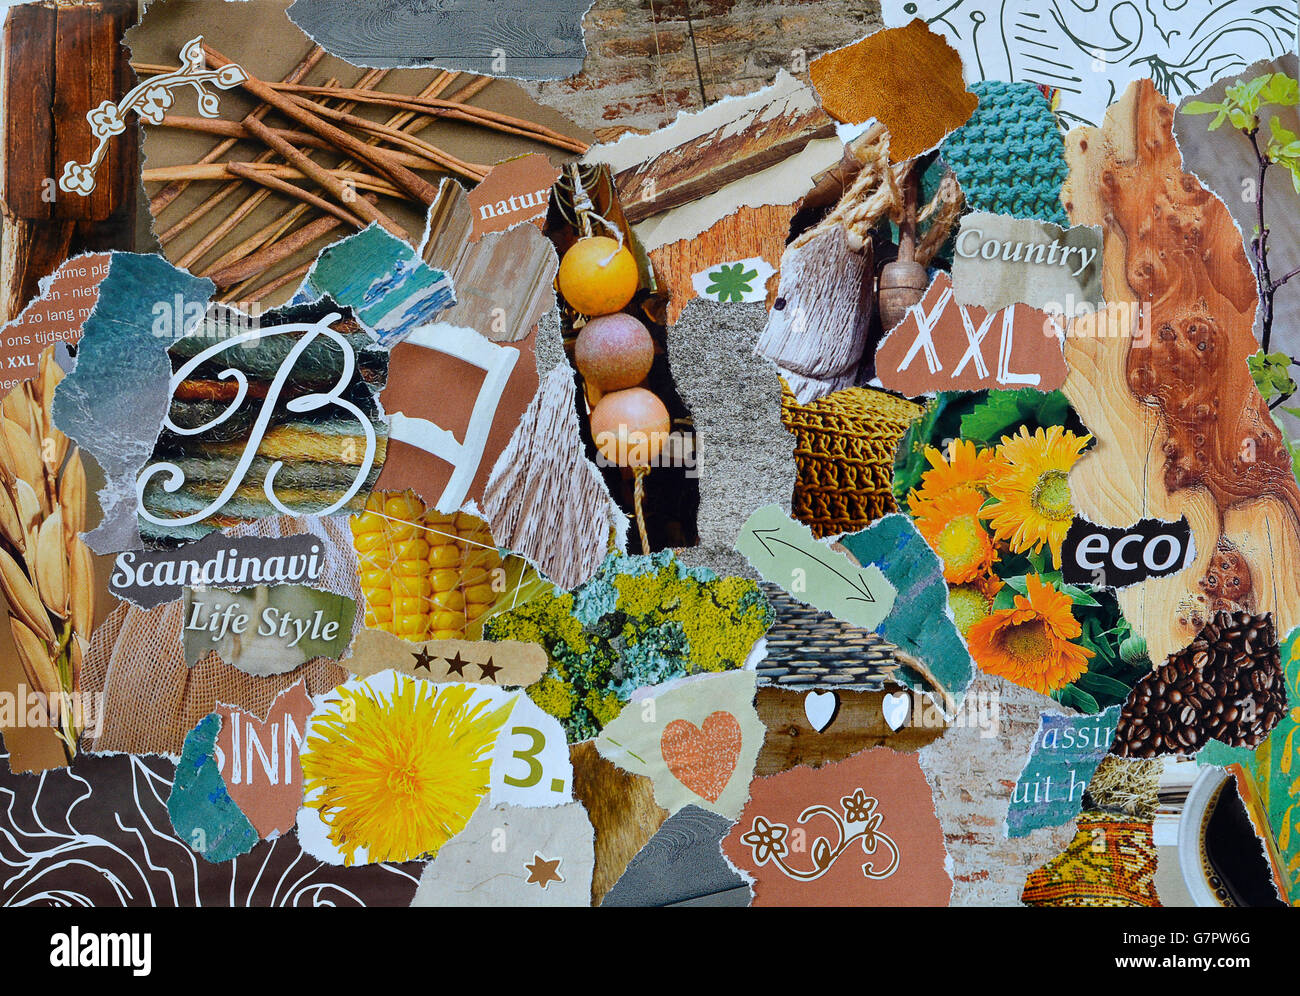 950dc411b75 Creative Atmosphere art mood board collage sheet in colorful nature made of  teared magazines and printed